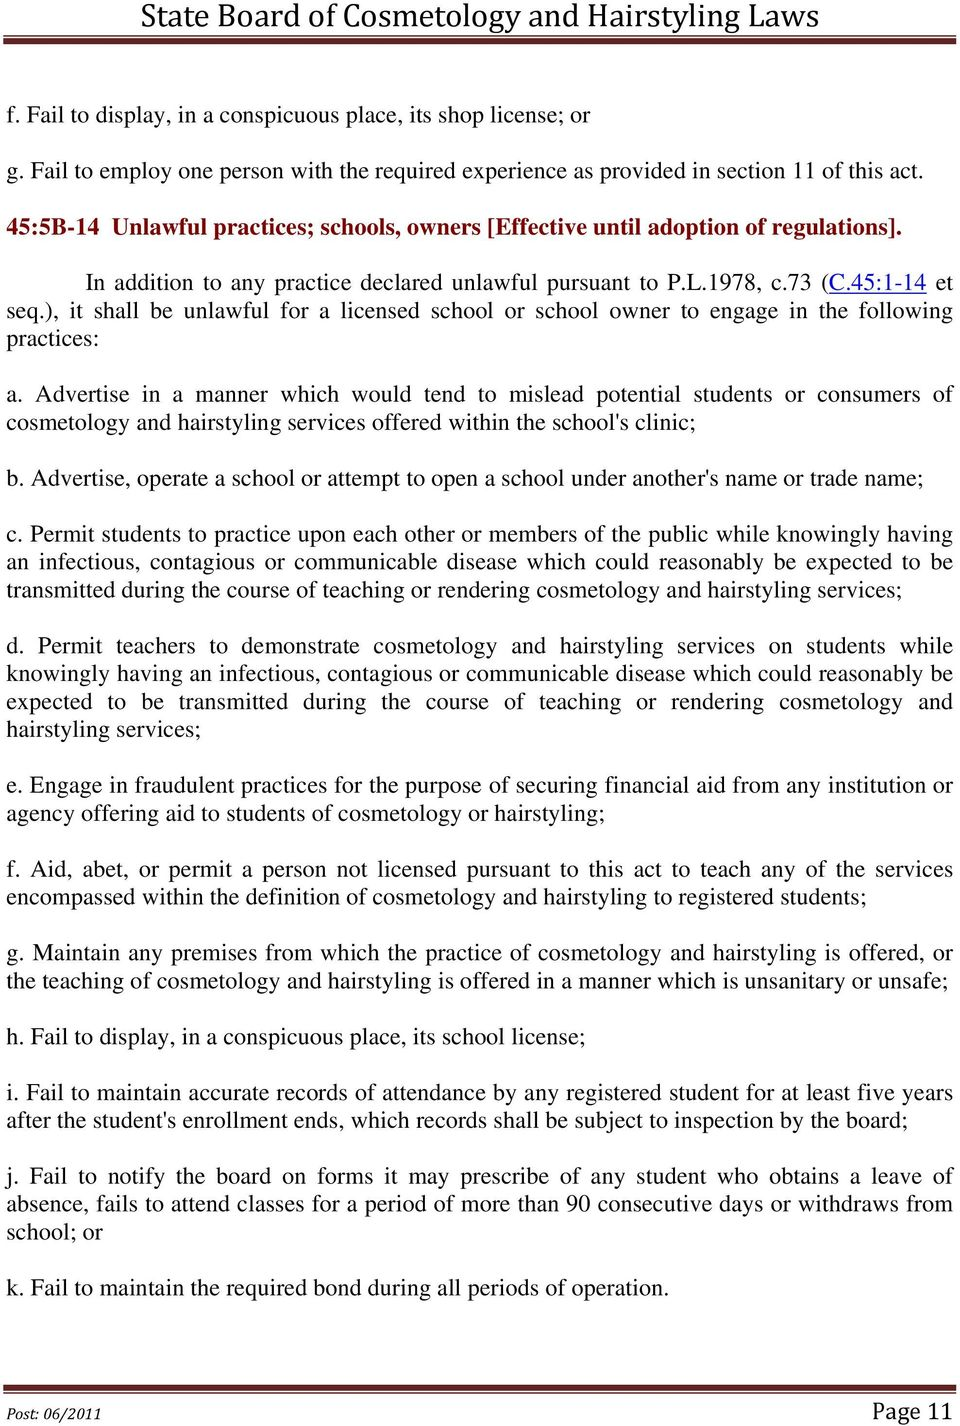 state board of cosmetology and hairstyling laws - pdf